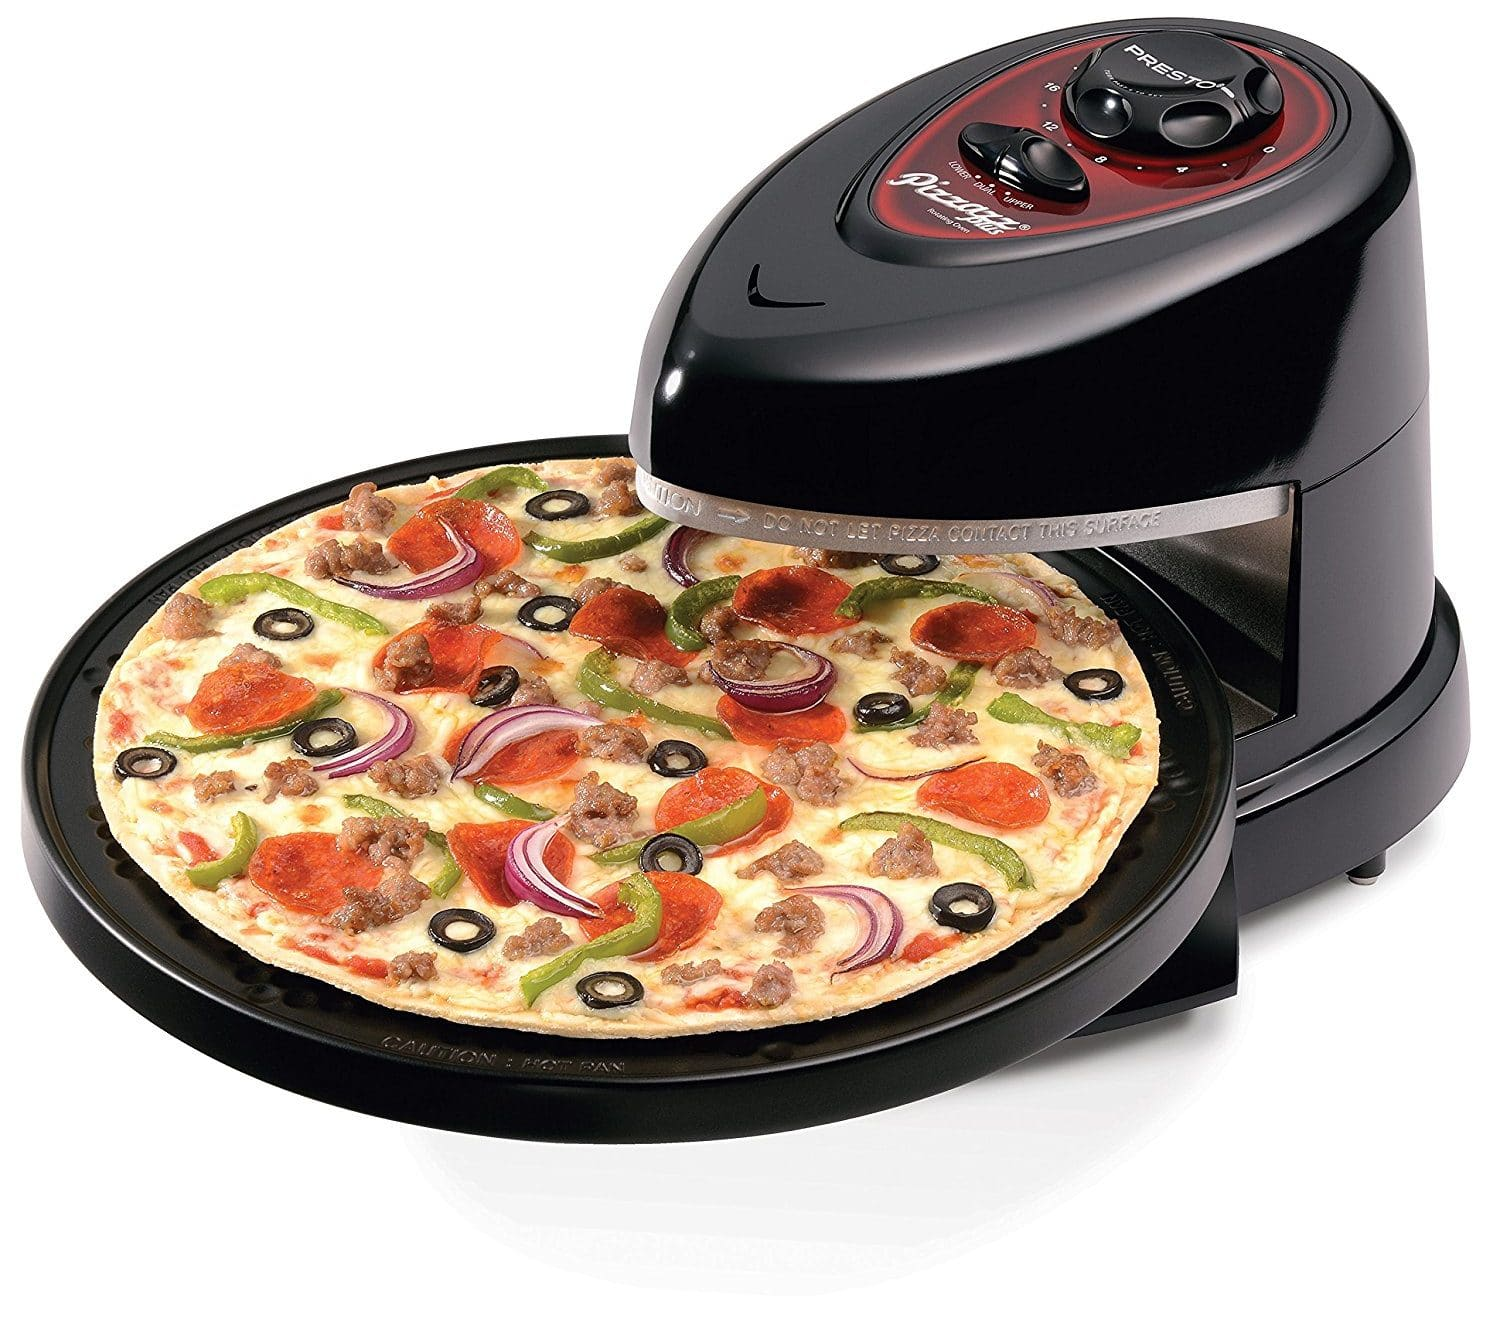 Best Pizza Makers 2018: National Presto Indoor Pizza Oven